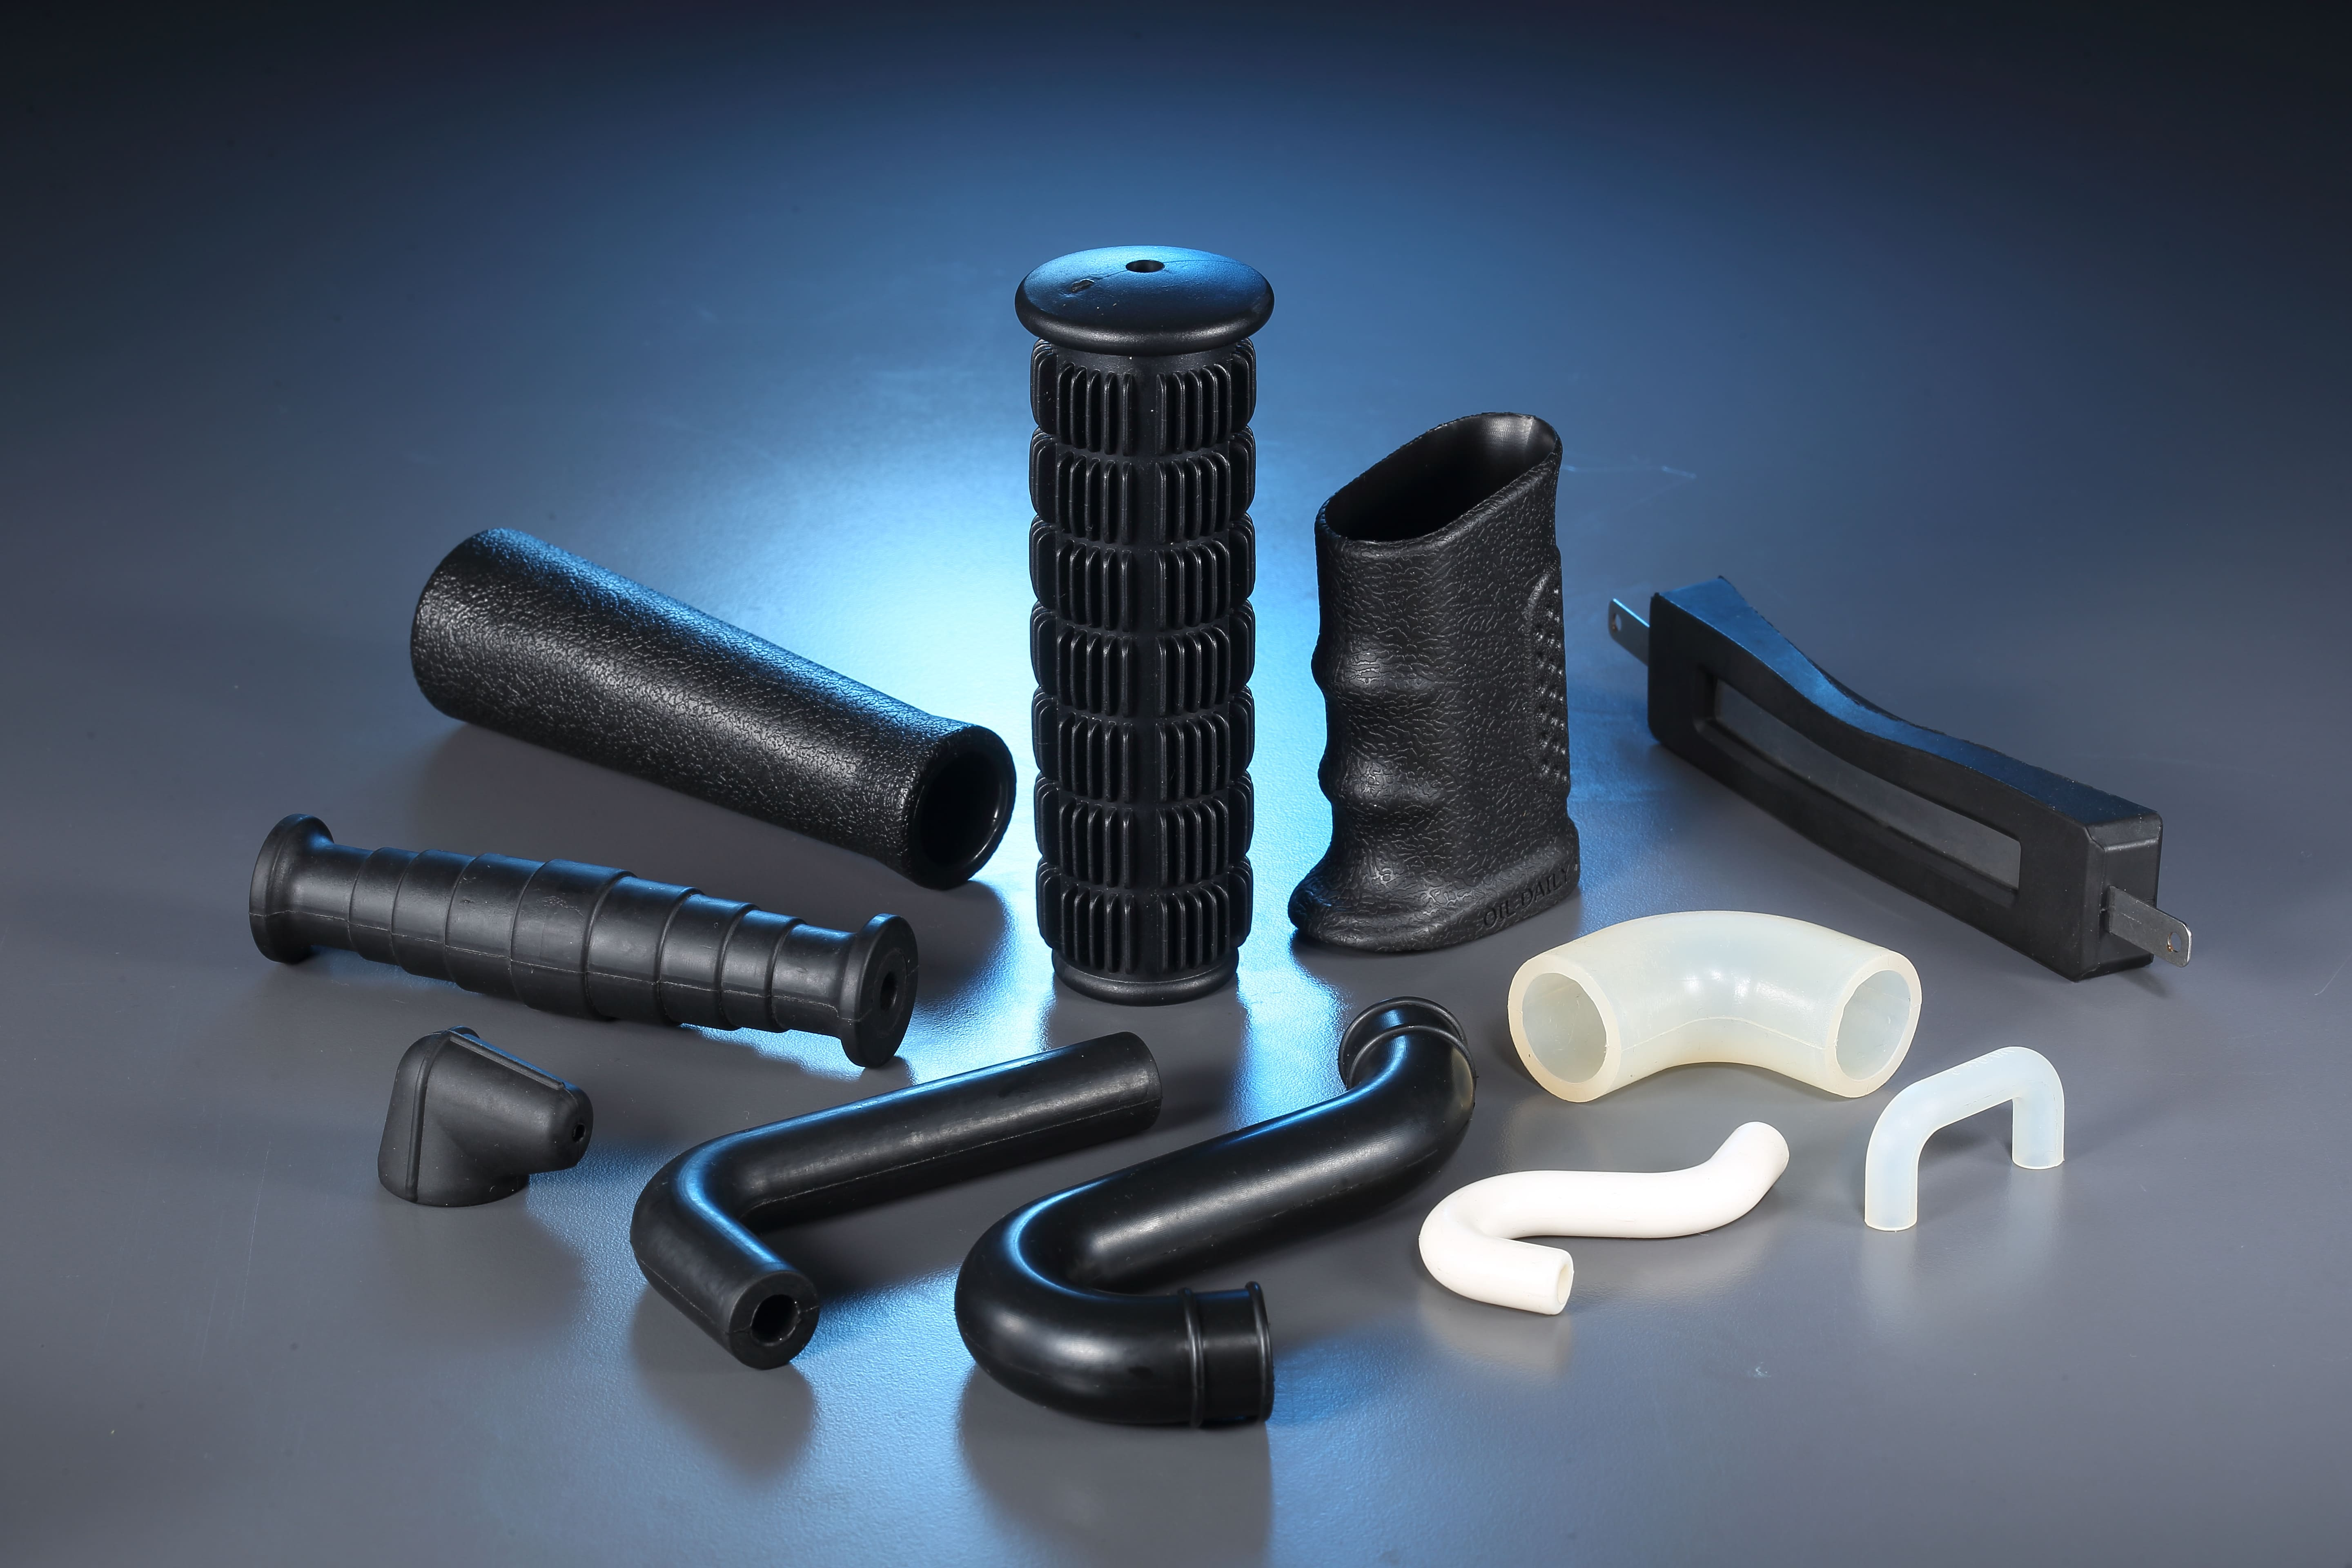 4x4 Pick Up Robber elbow pipe for Rubber, Plastic Parts made by Yee Ming Ying Co., LTD. 昱銘穎有限公司 - MatchSupplier.com